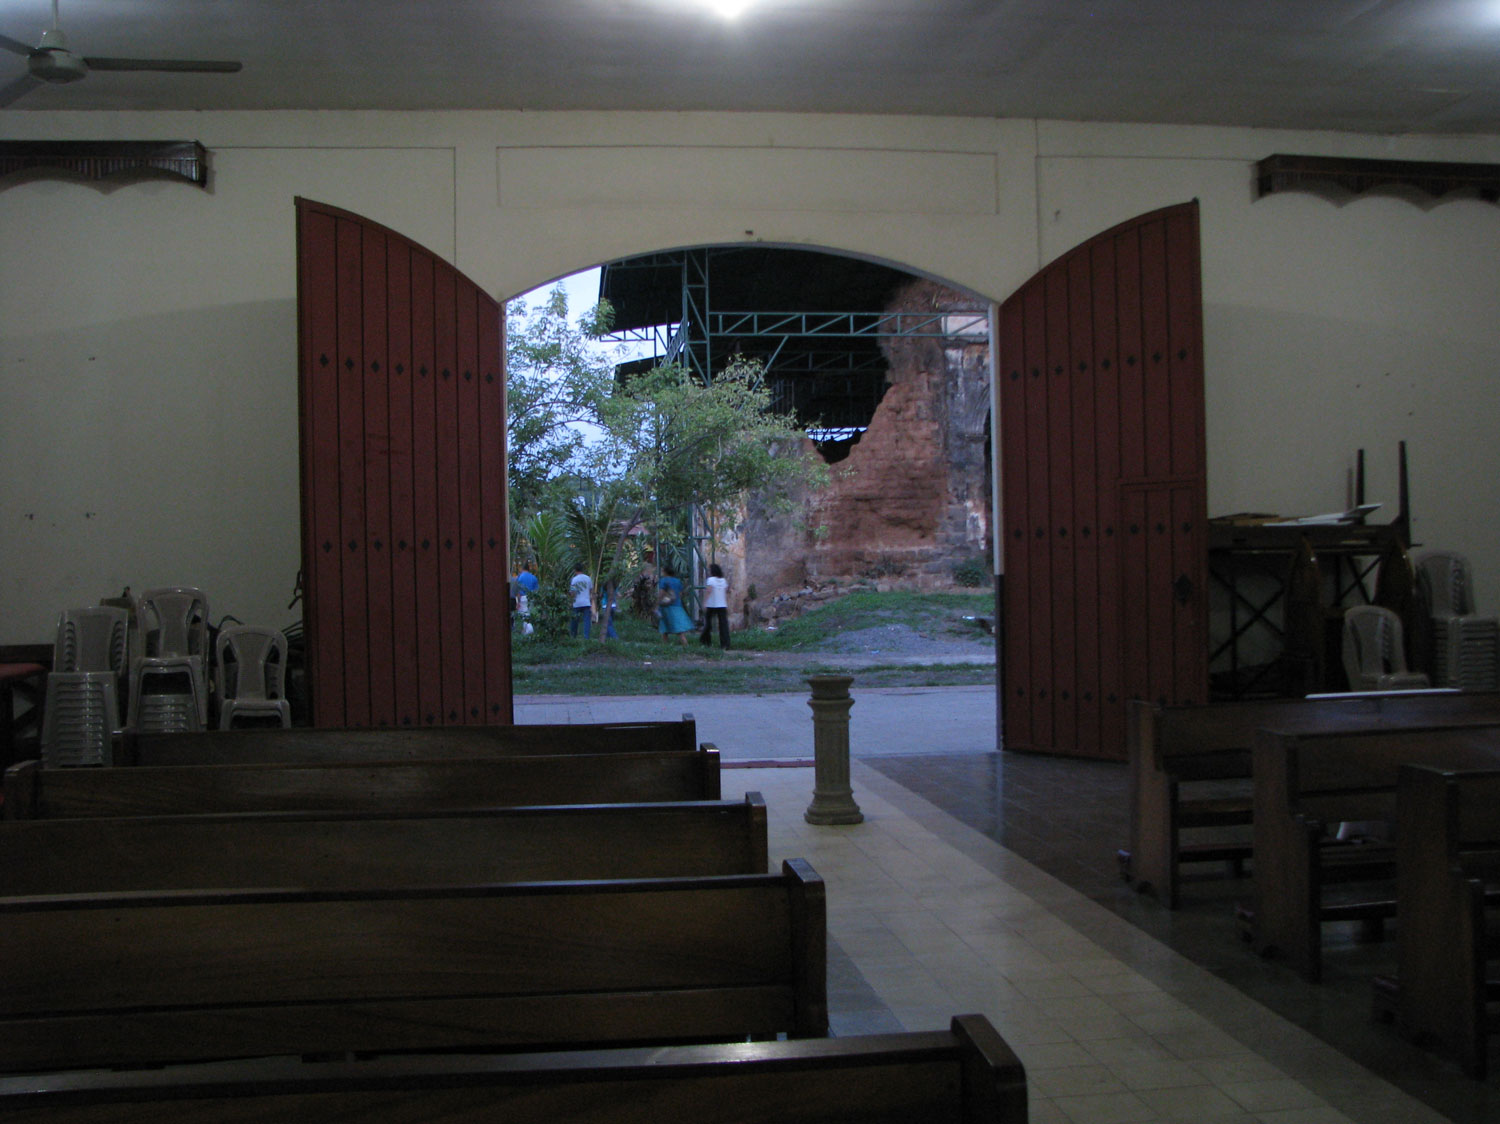 View from within the rebuilt church looking at the old church bombed during the Sandinista revolution in the 70s